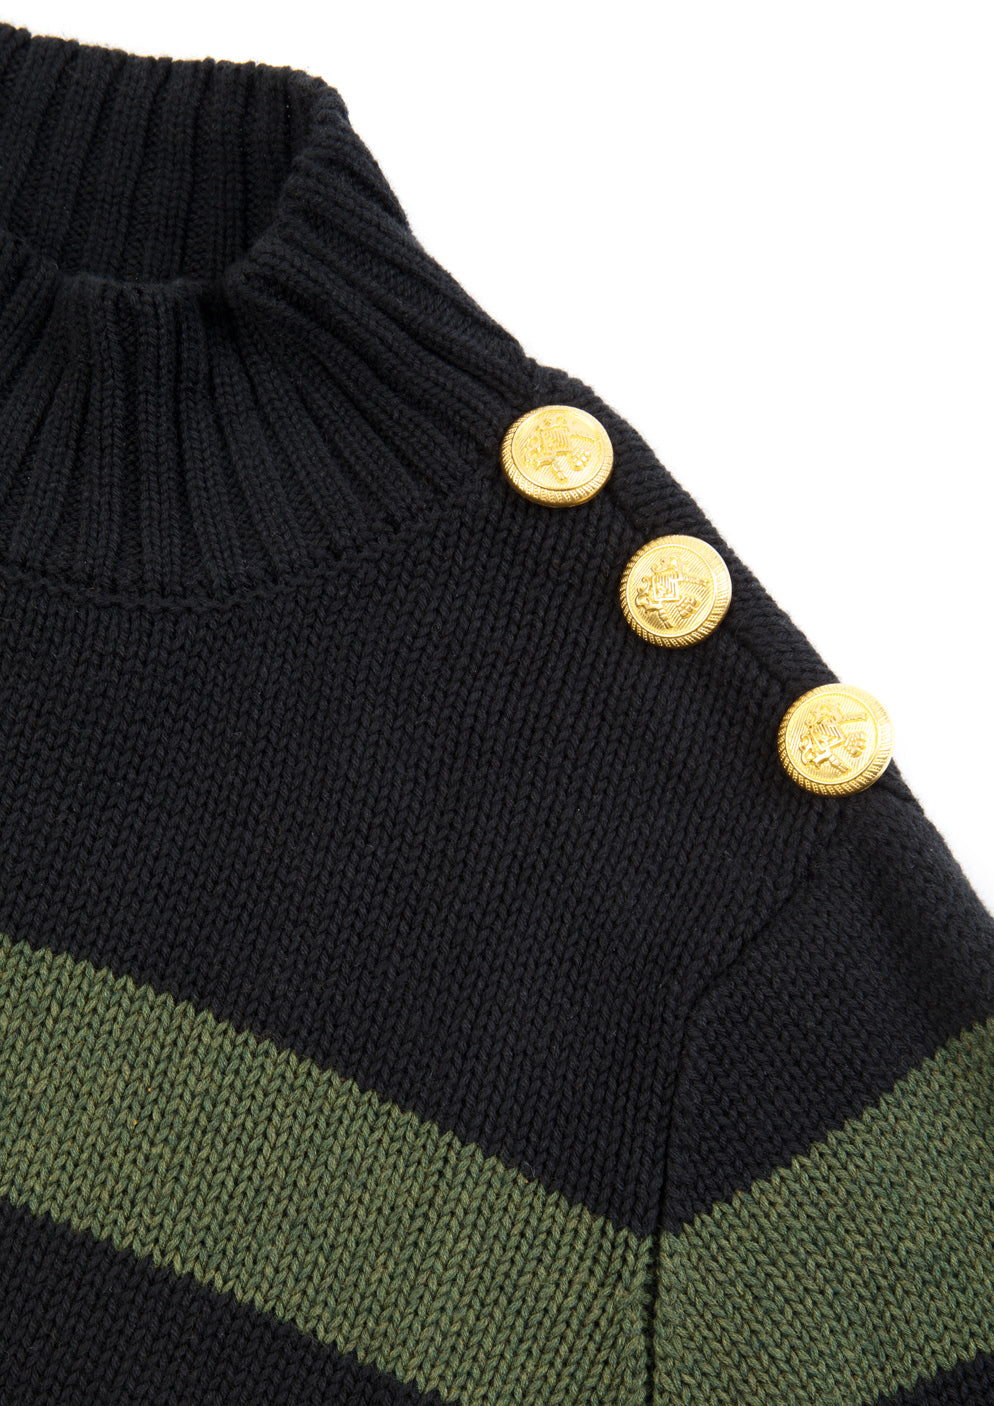 Cable Me Captain The Nautical Themed Jumper - Call Me Olive Oil